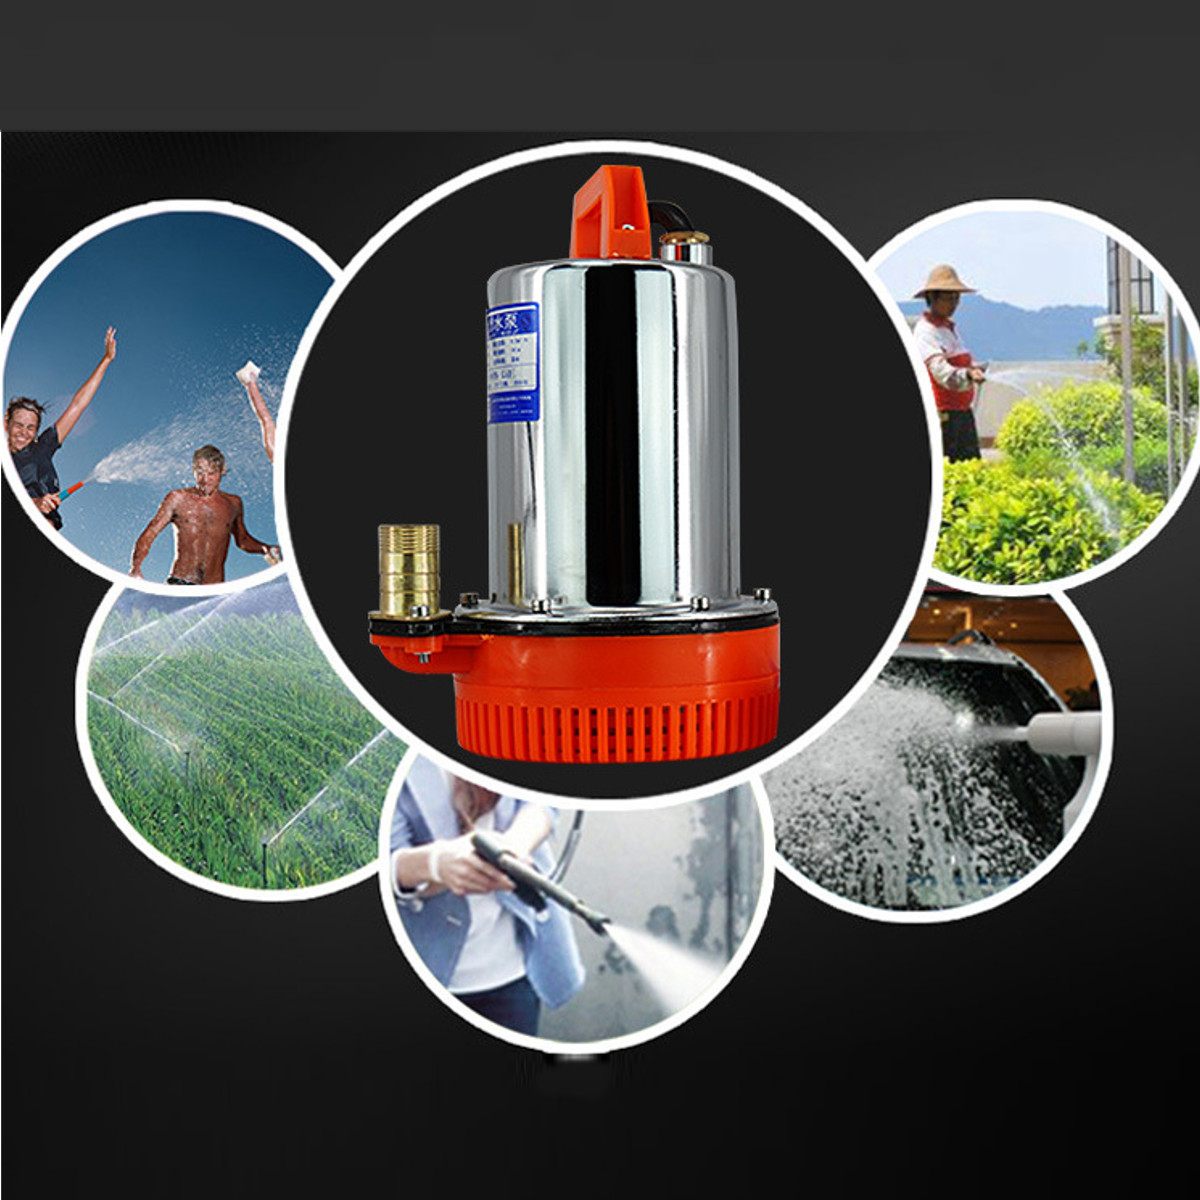 48V Submersible Clean Dirty Water Pump 1.5HP Swimming Pool Pond Flood Drain 7M